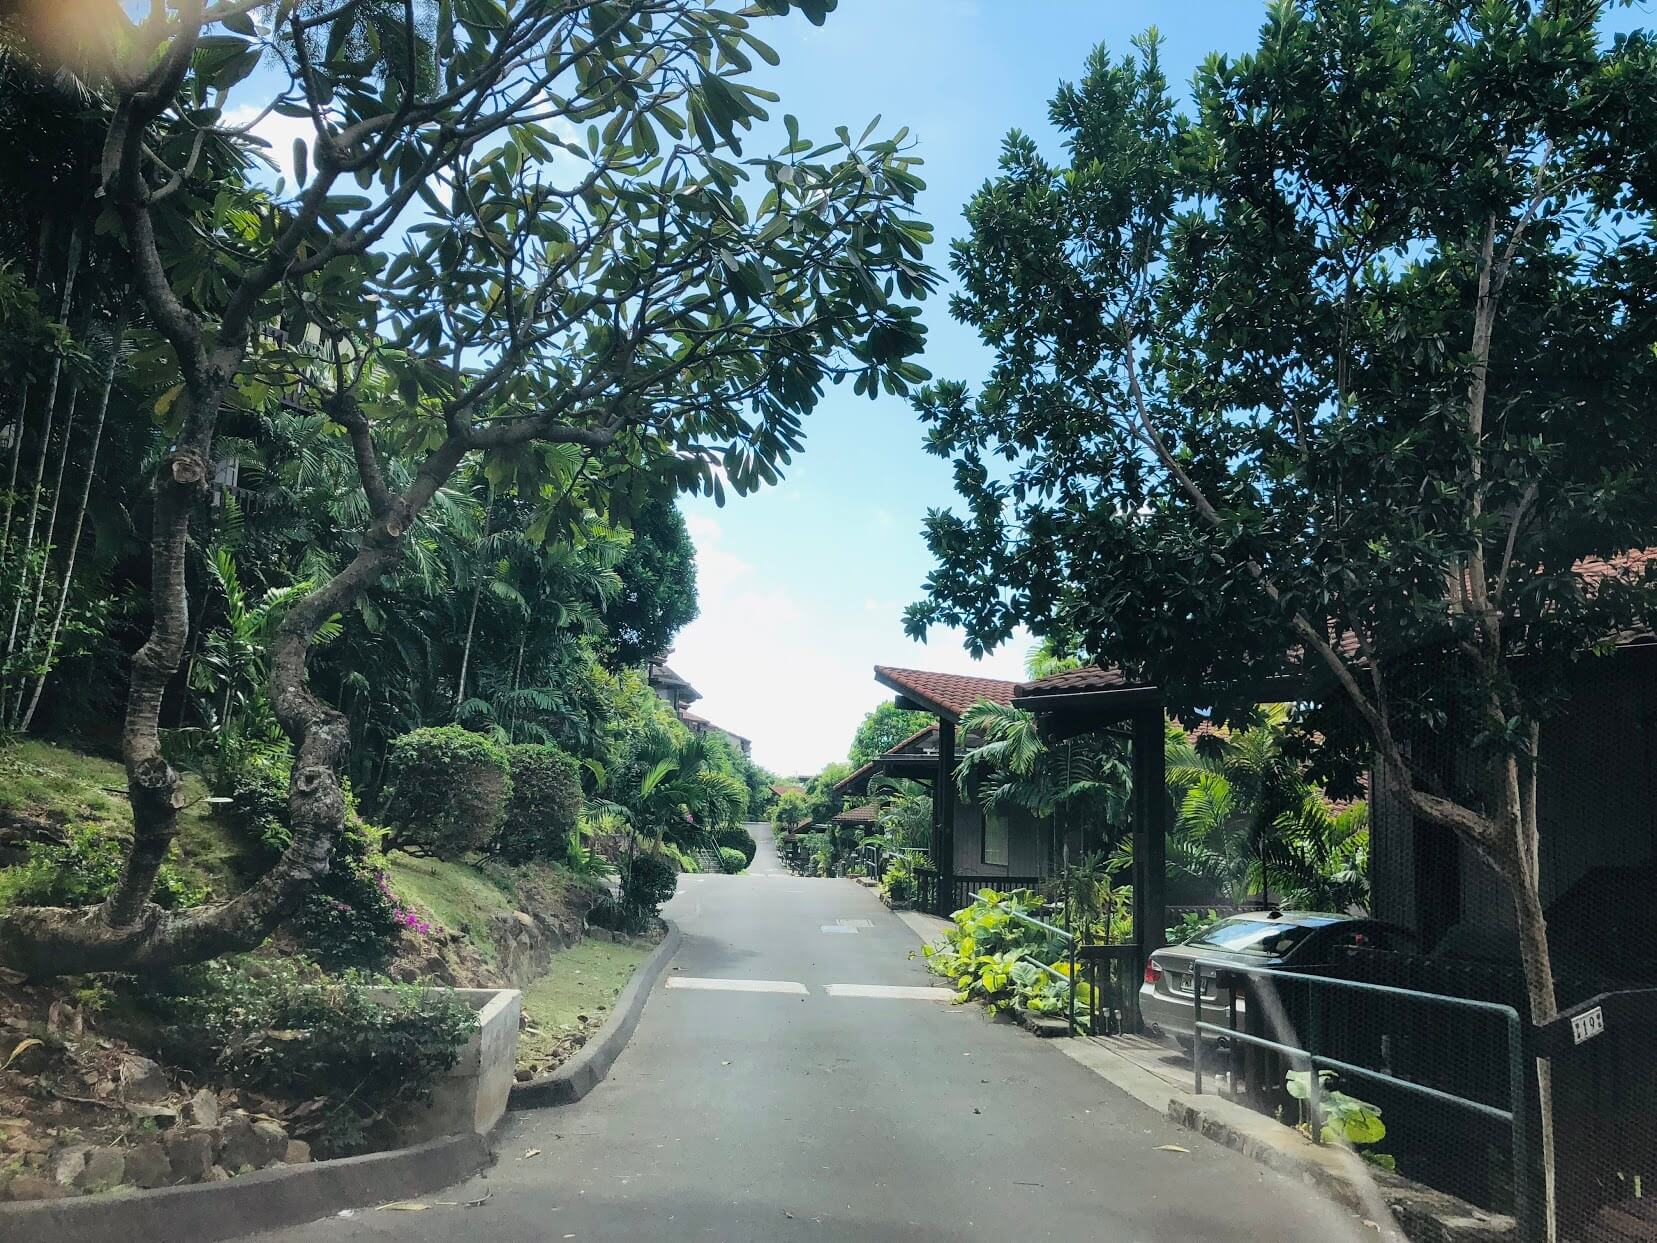 Kahala View Estatesの道路